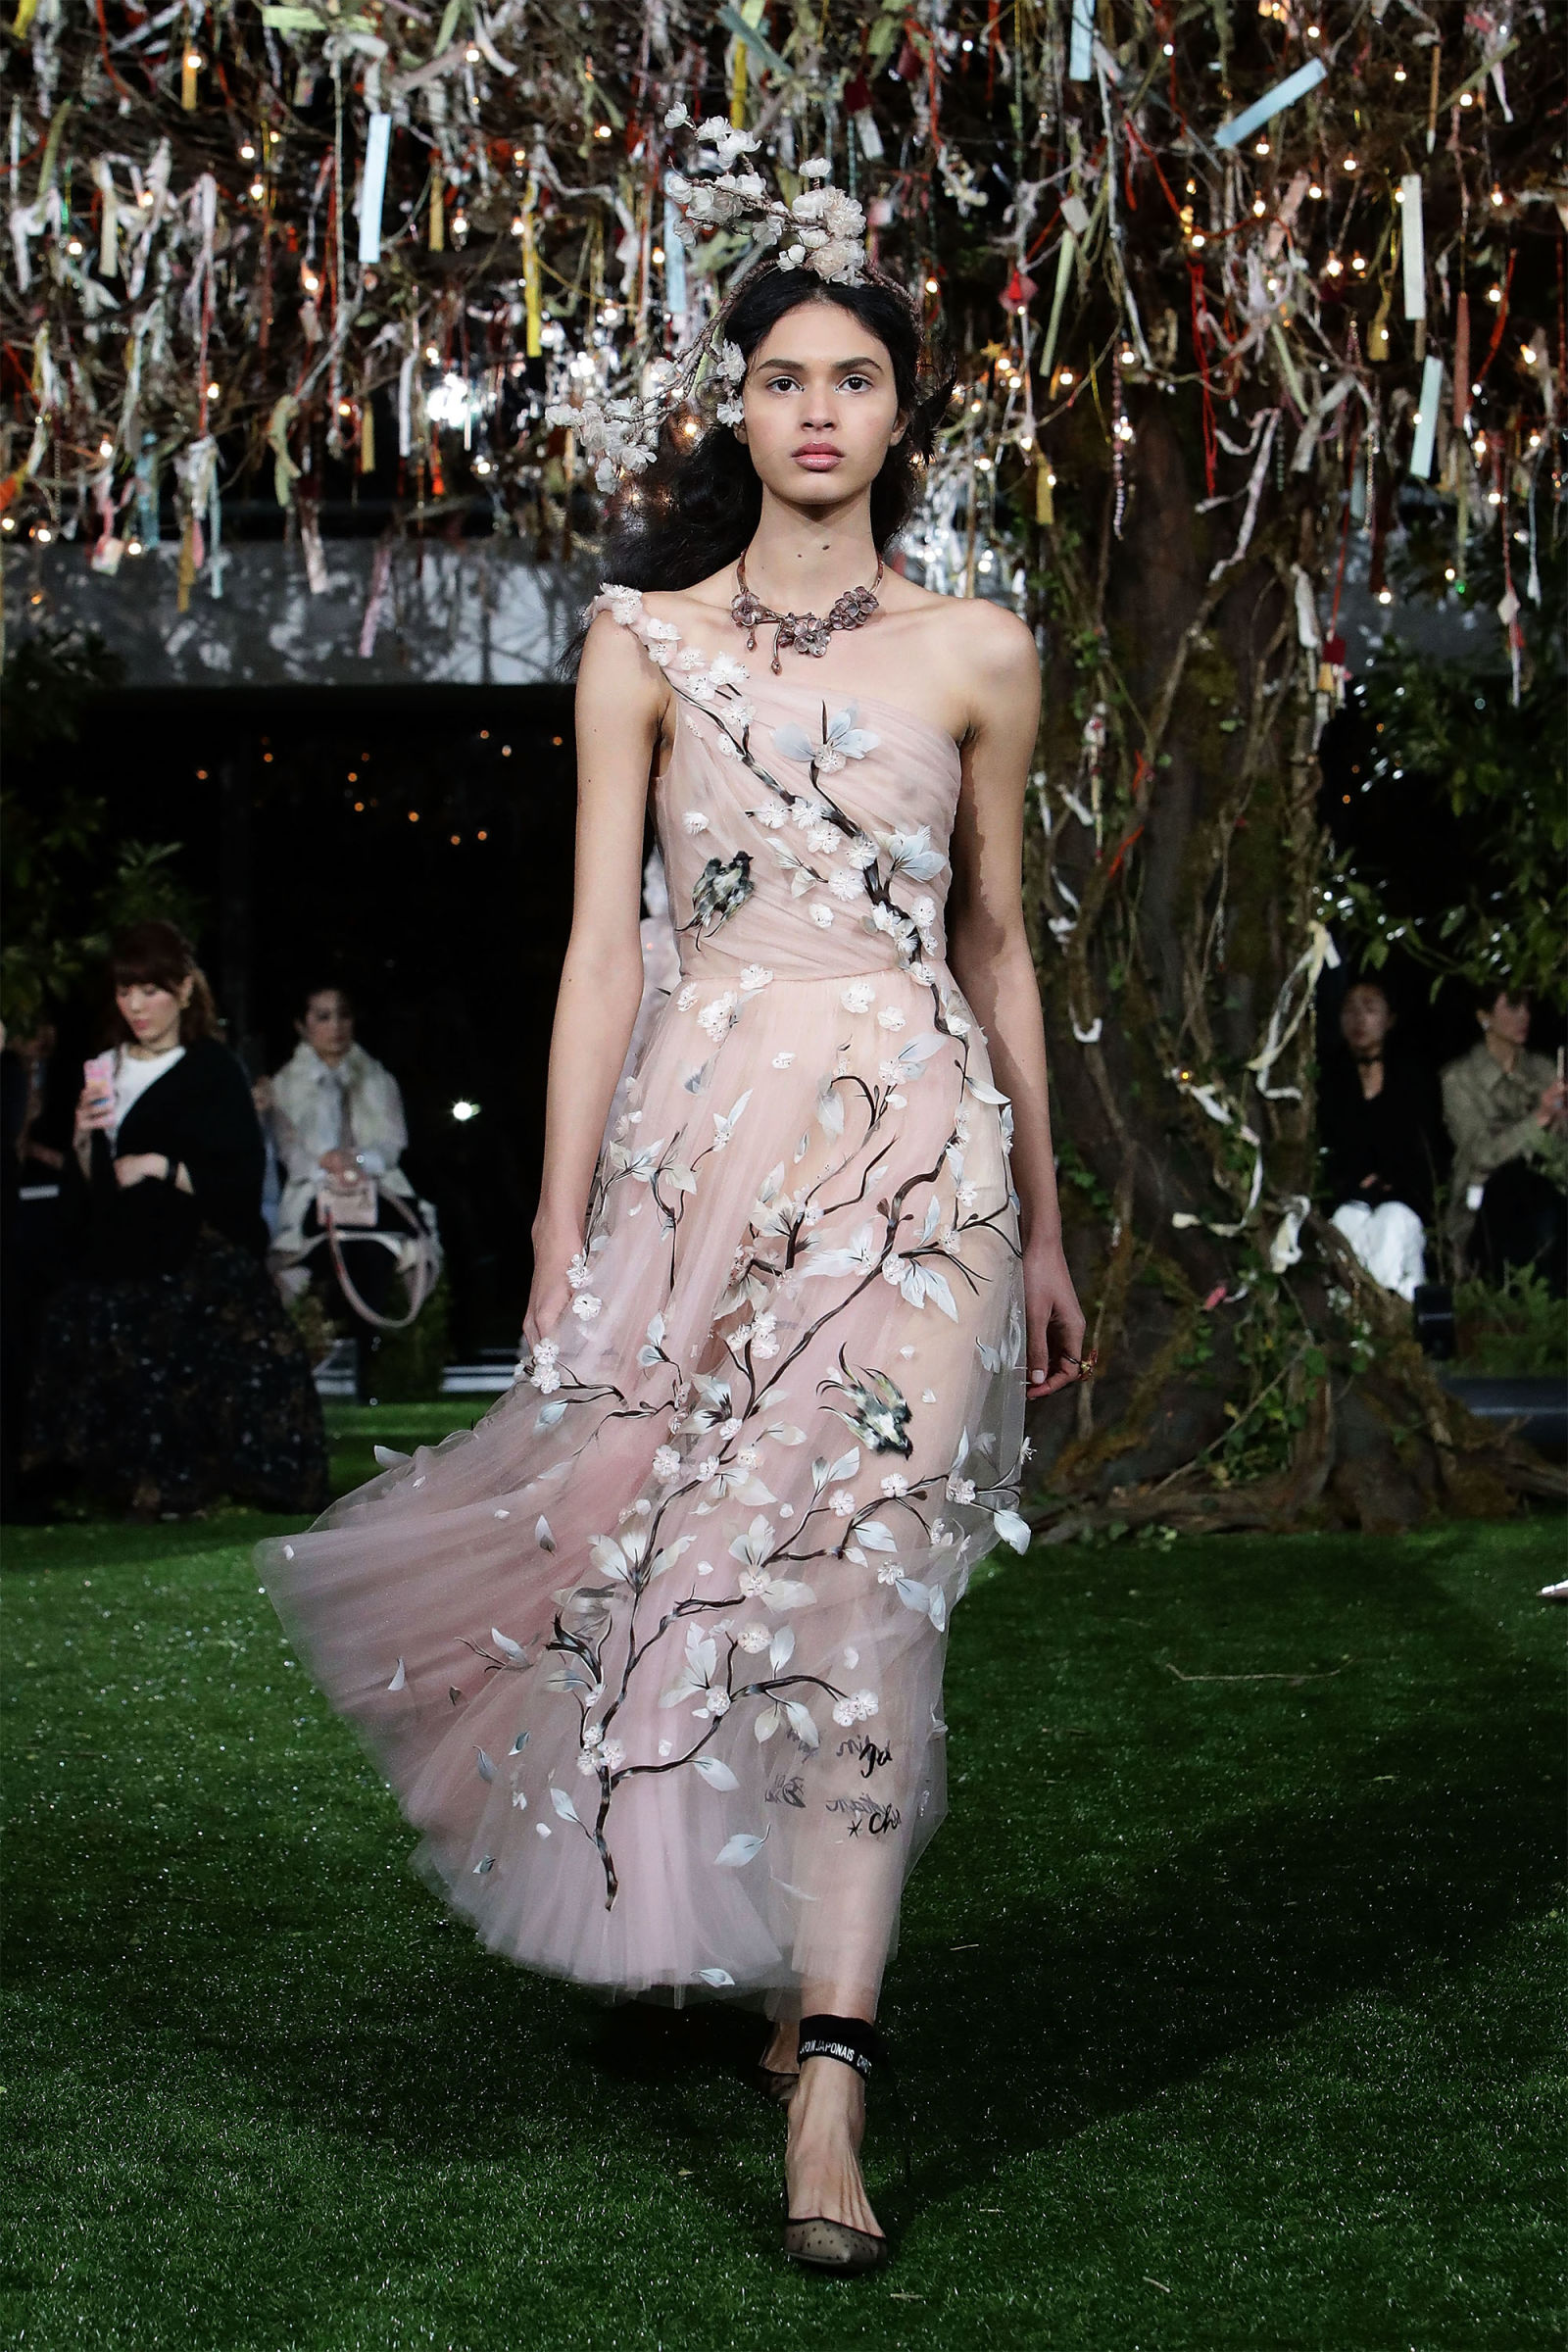 Dior Unveils Stunning Cherry Blossom-Inspired Couture Gowns In Tokyo ...